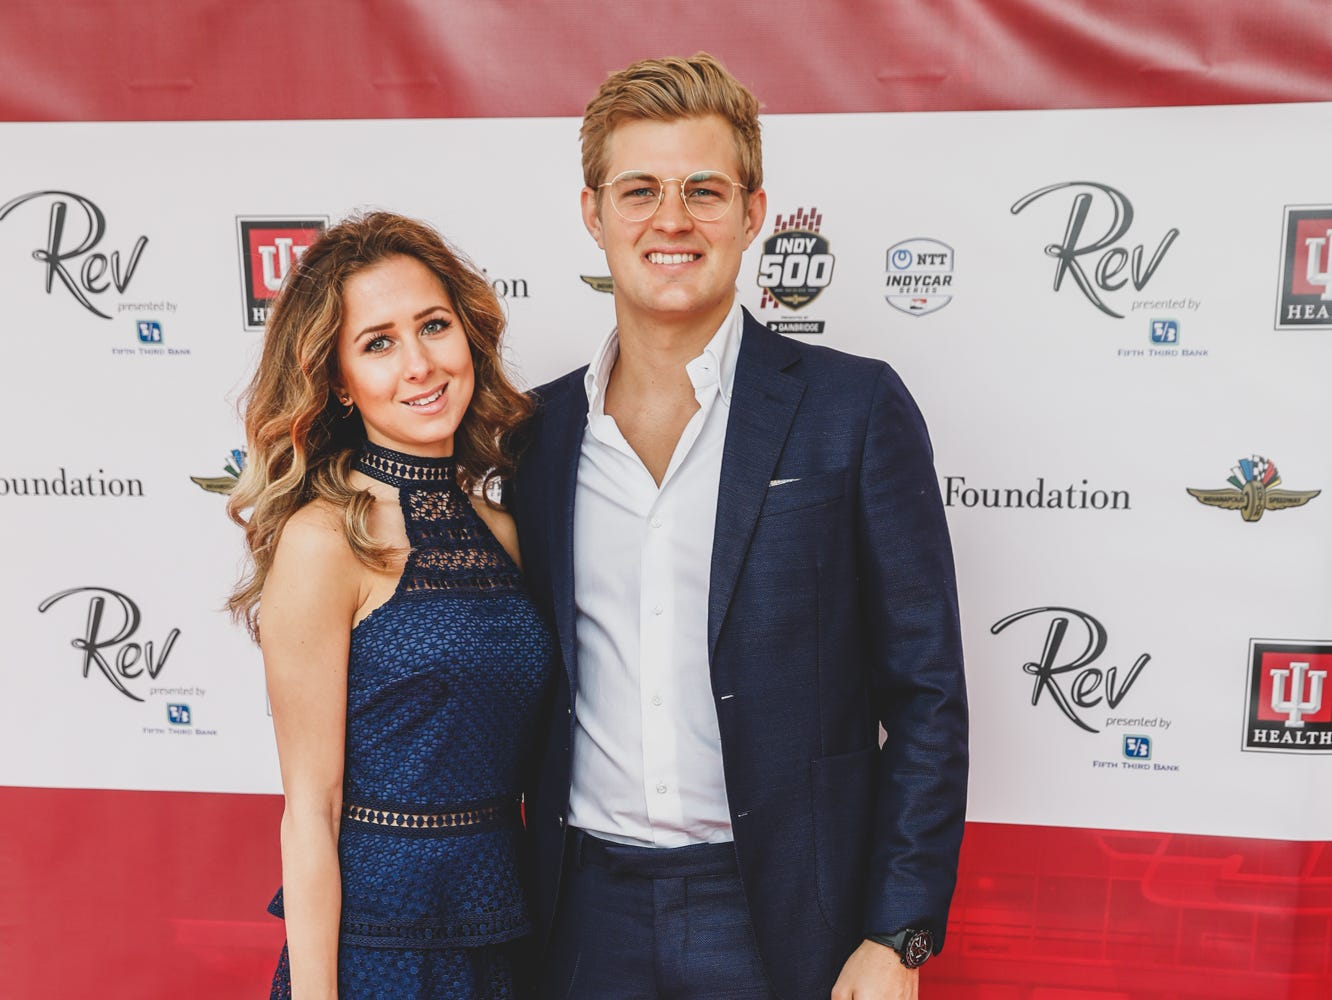 IndyCar driver Marcus Ericsson, left, and Alexandria Zaitseva walk the red carpet at the Rev Indy fundraiser, held at the Indianapolis Motor Speedway on Saturday, May 4, 2019. Funds raised support the IU Health Foundation statewide and the IU Health Emergency Medical Center at IMS.